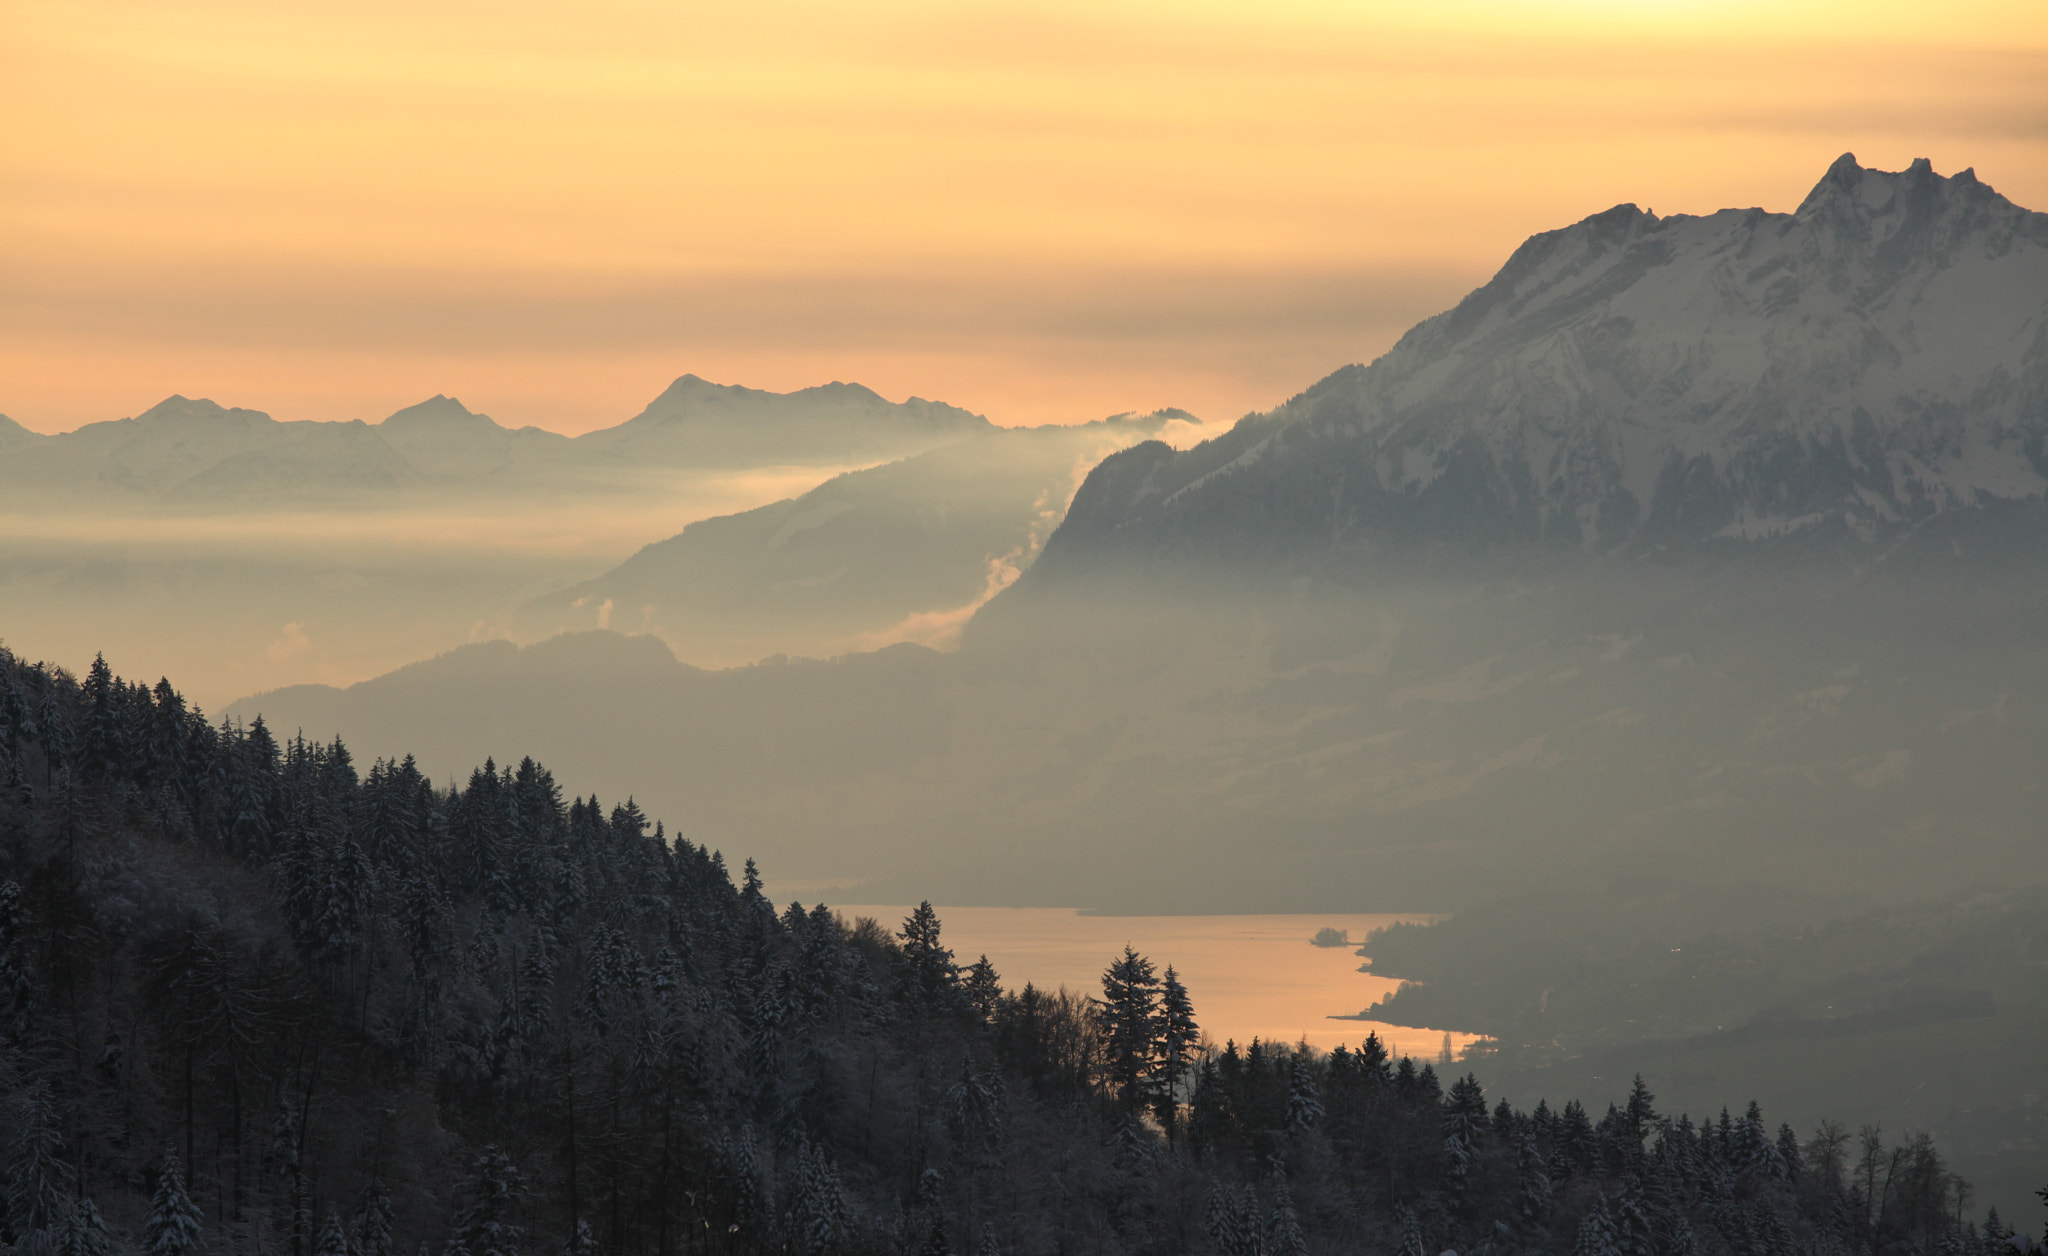 Photograph Zugersee in the Afternoon sun  by Björn Borgers on 500px